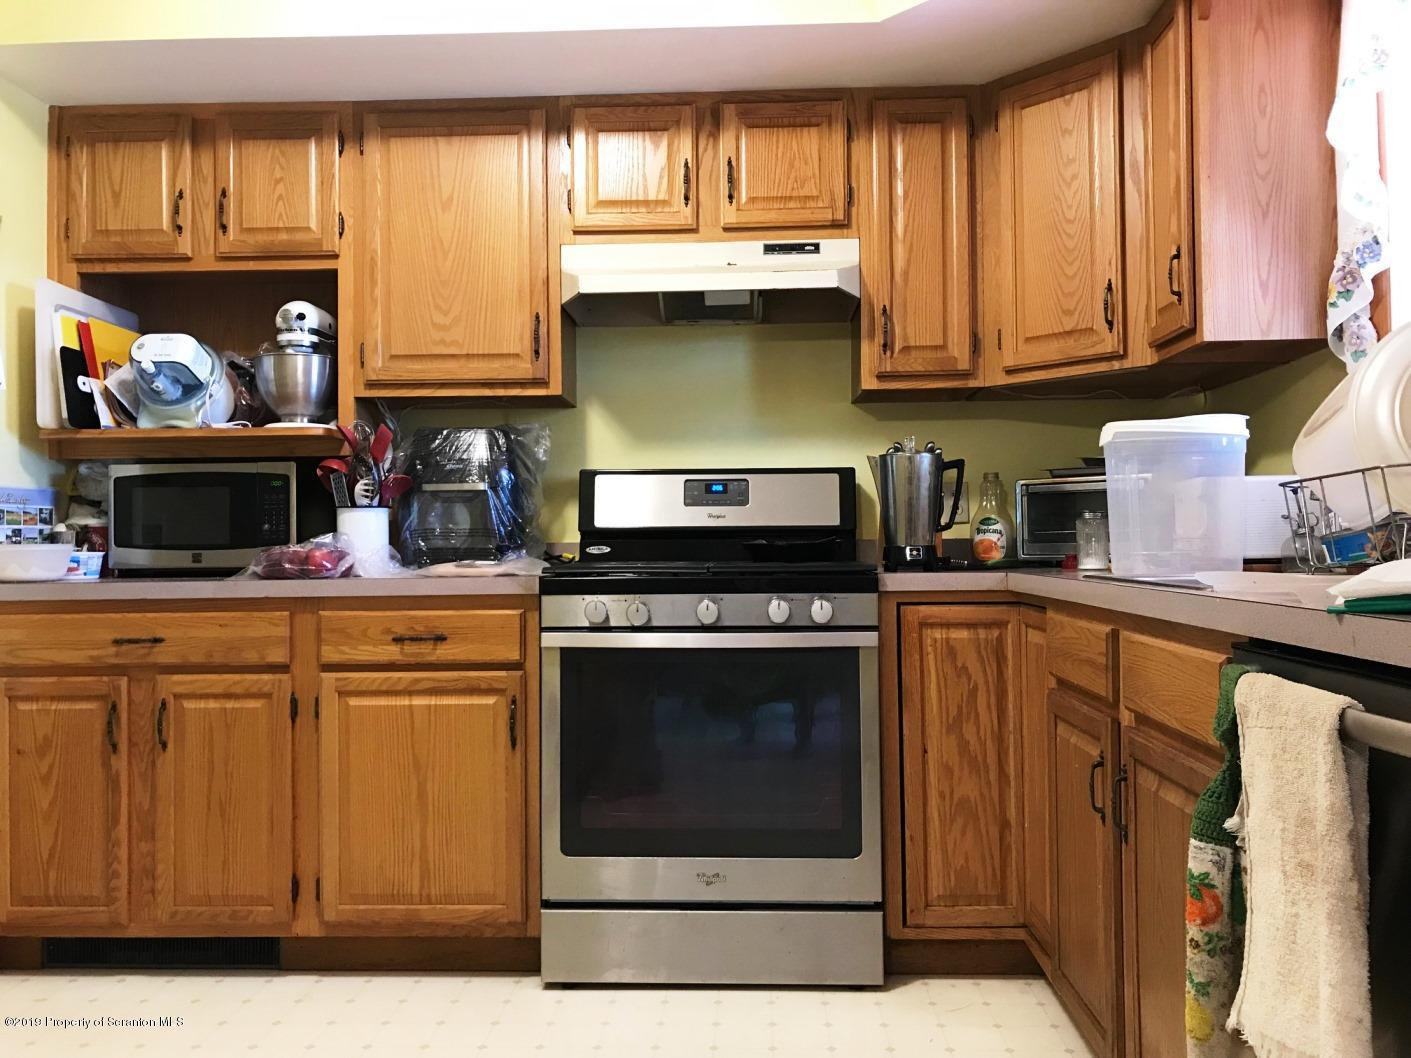 7837 State Route 29, Montrose, Pennsylvania 18801, 3 Bedrooms Bedrooms, 8 Rooms Rooms,3 BathroomsBathrooms,Single Family,For Sale,State Route 29,19-4950